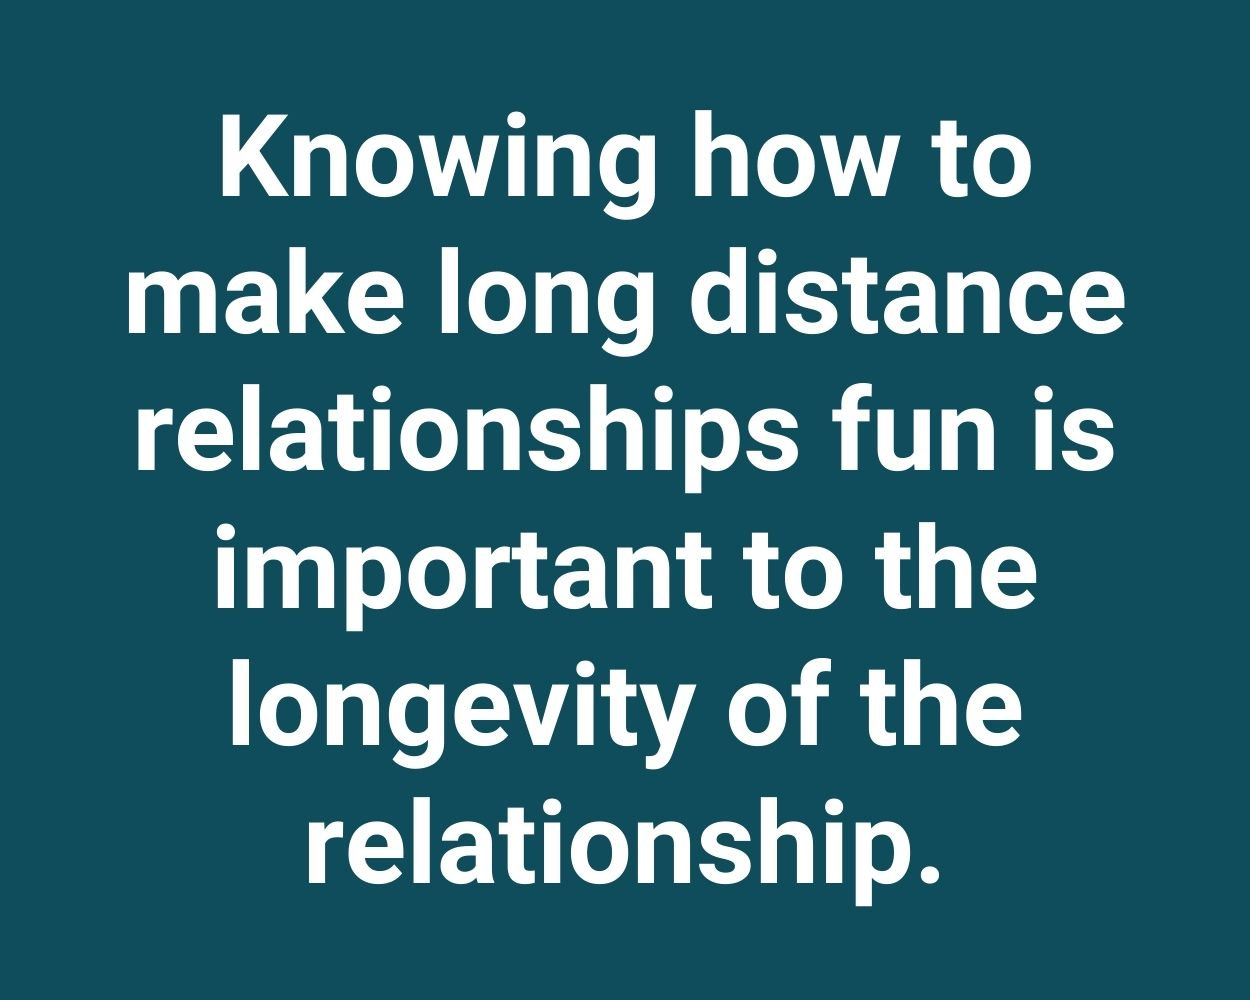 Knowing how to make long distance relationships fun is important to the longevity of the relationship.